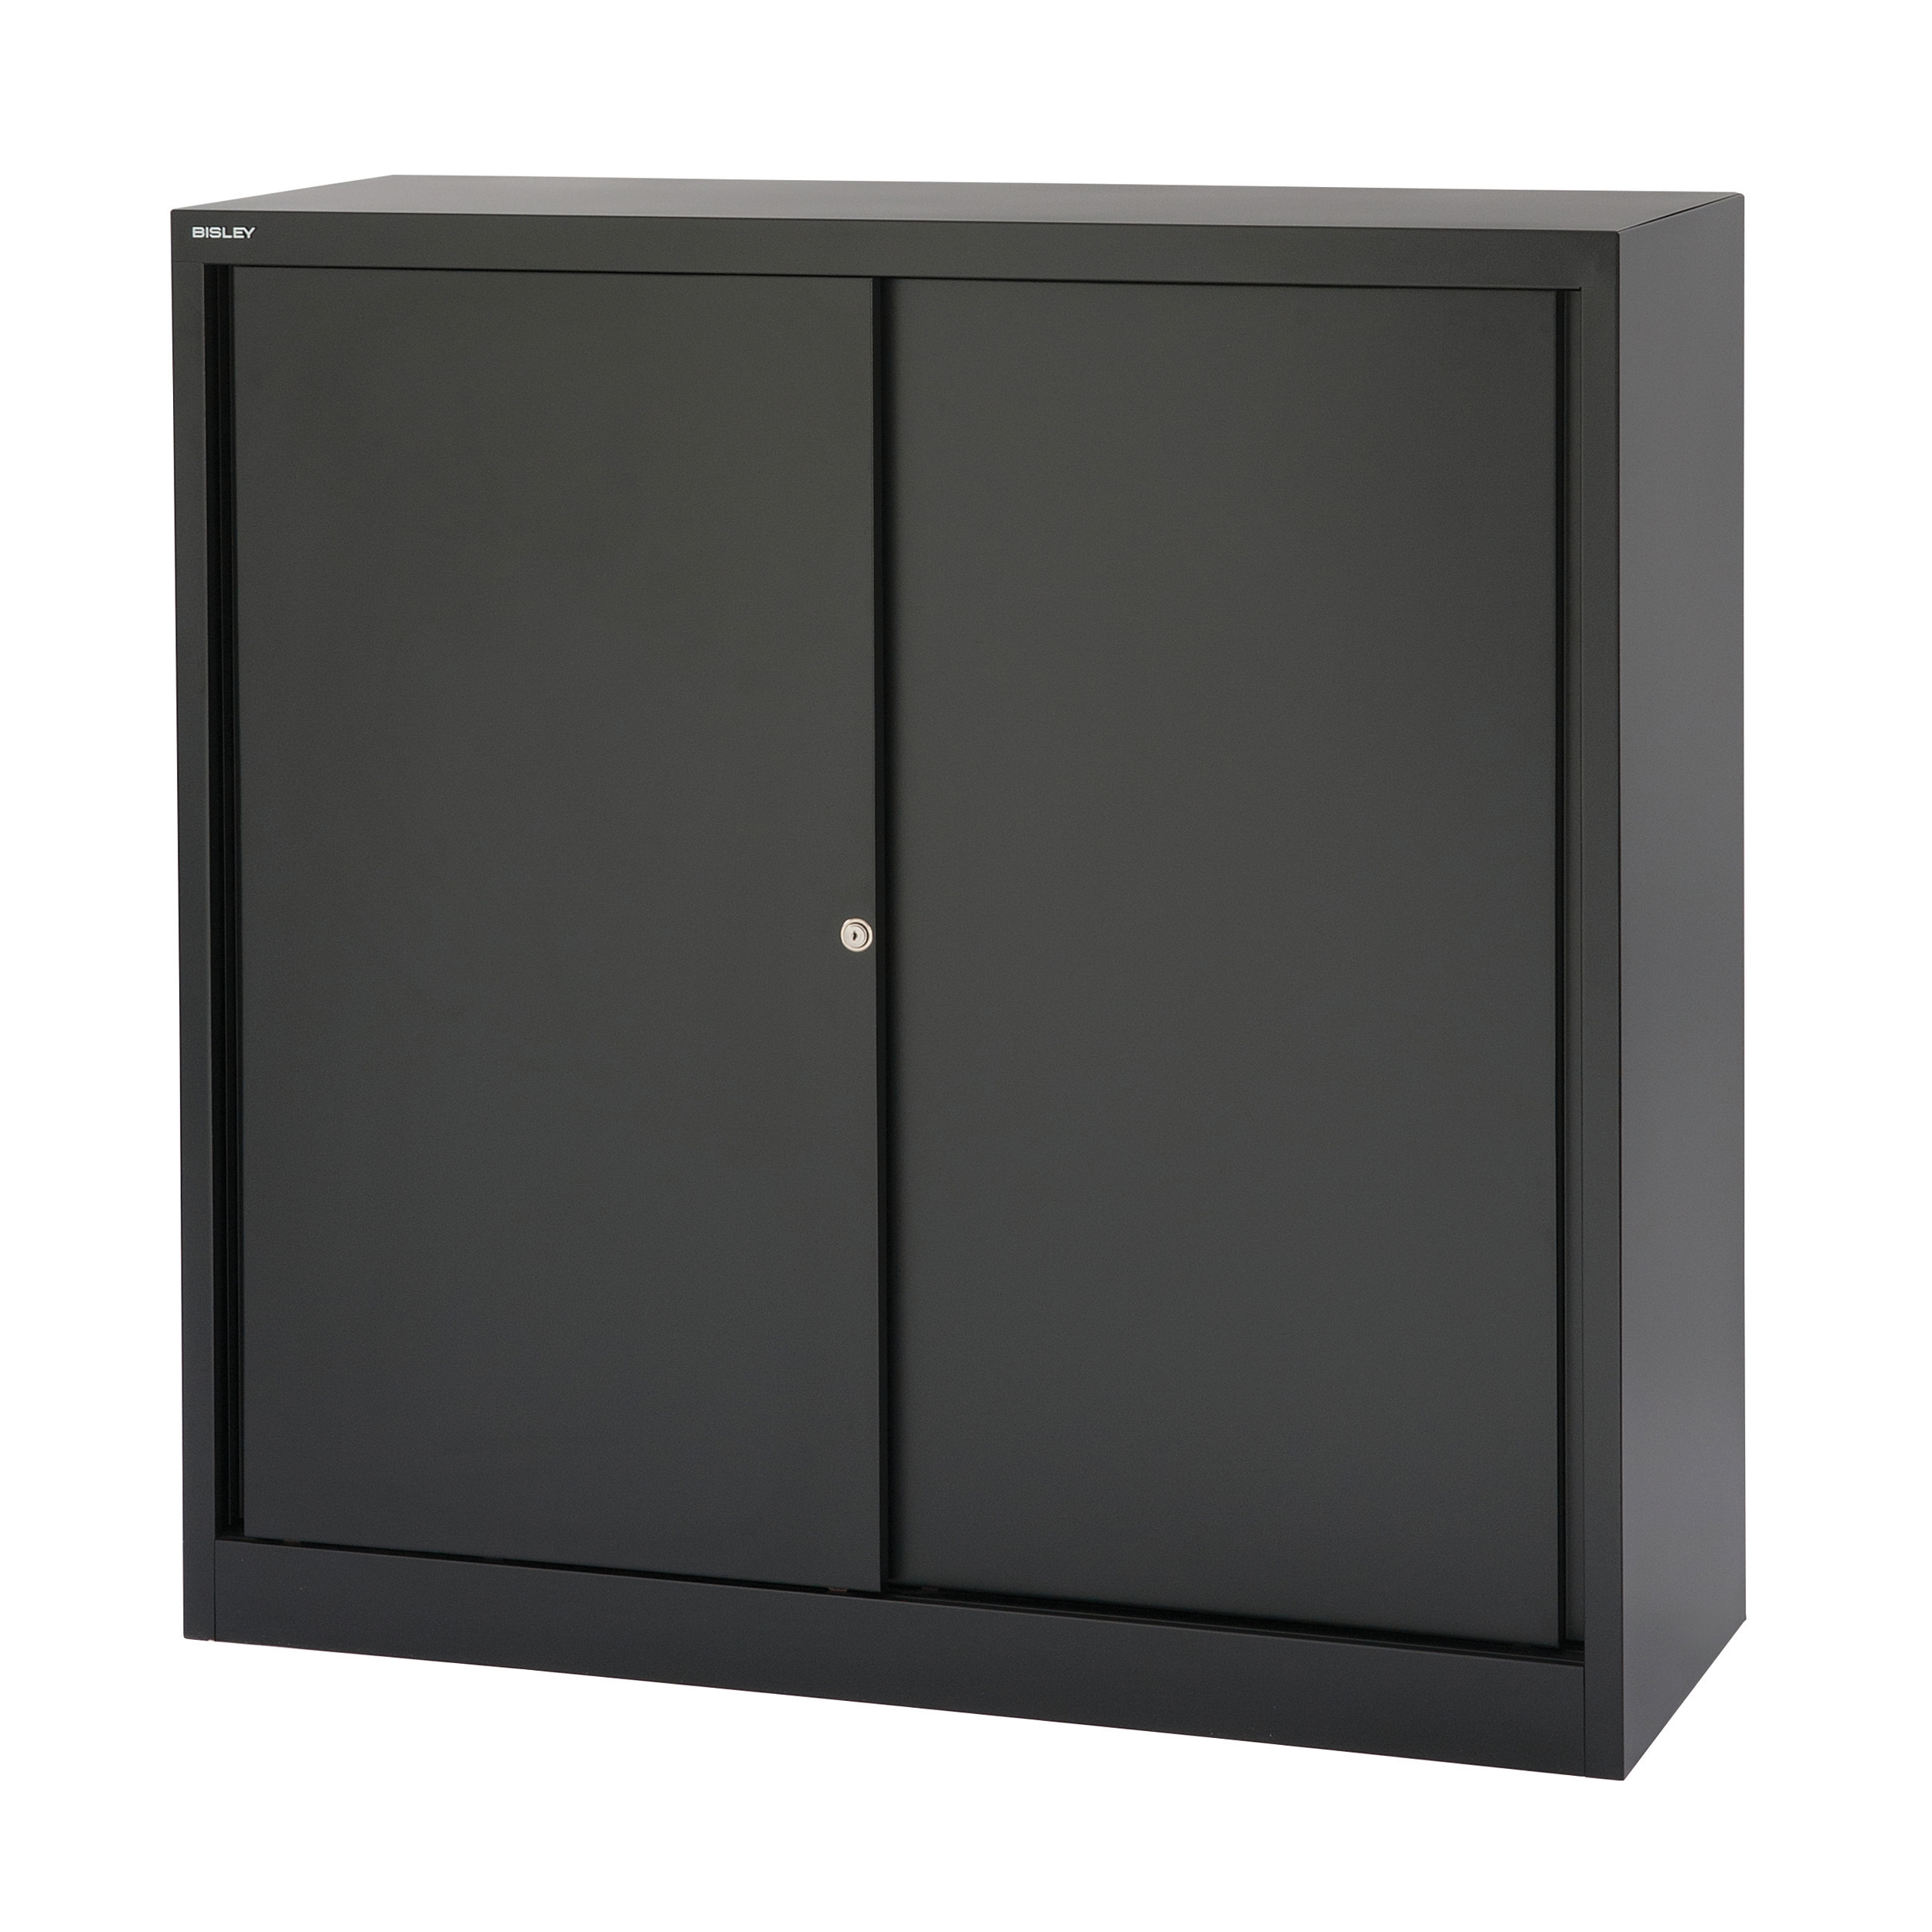 Bisley Sliding Door Cupboard inc 2 Shelves 1200x430x1181mm Black Ref SD412/11/2S-av1 Ref SD412/11/2S-av1